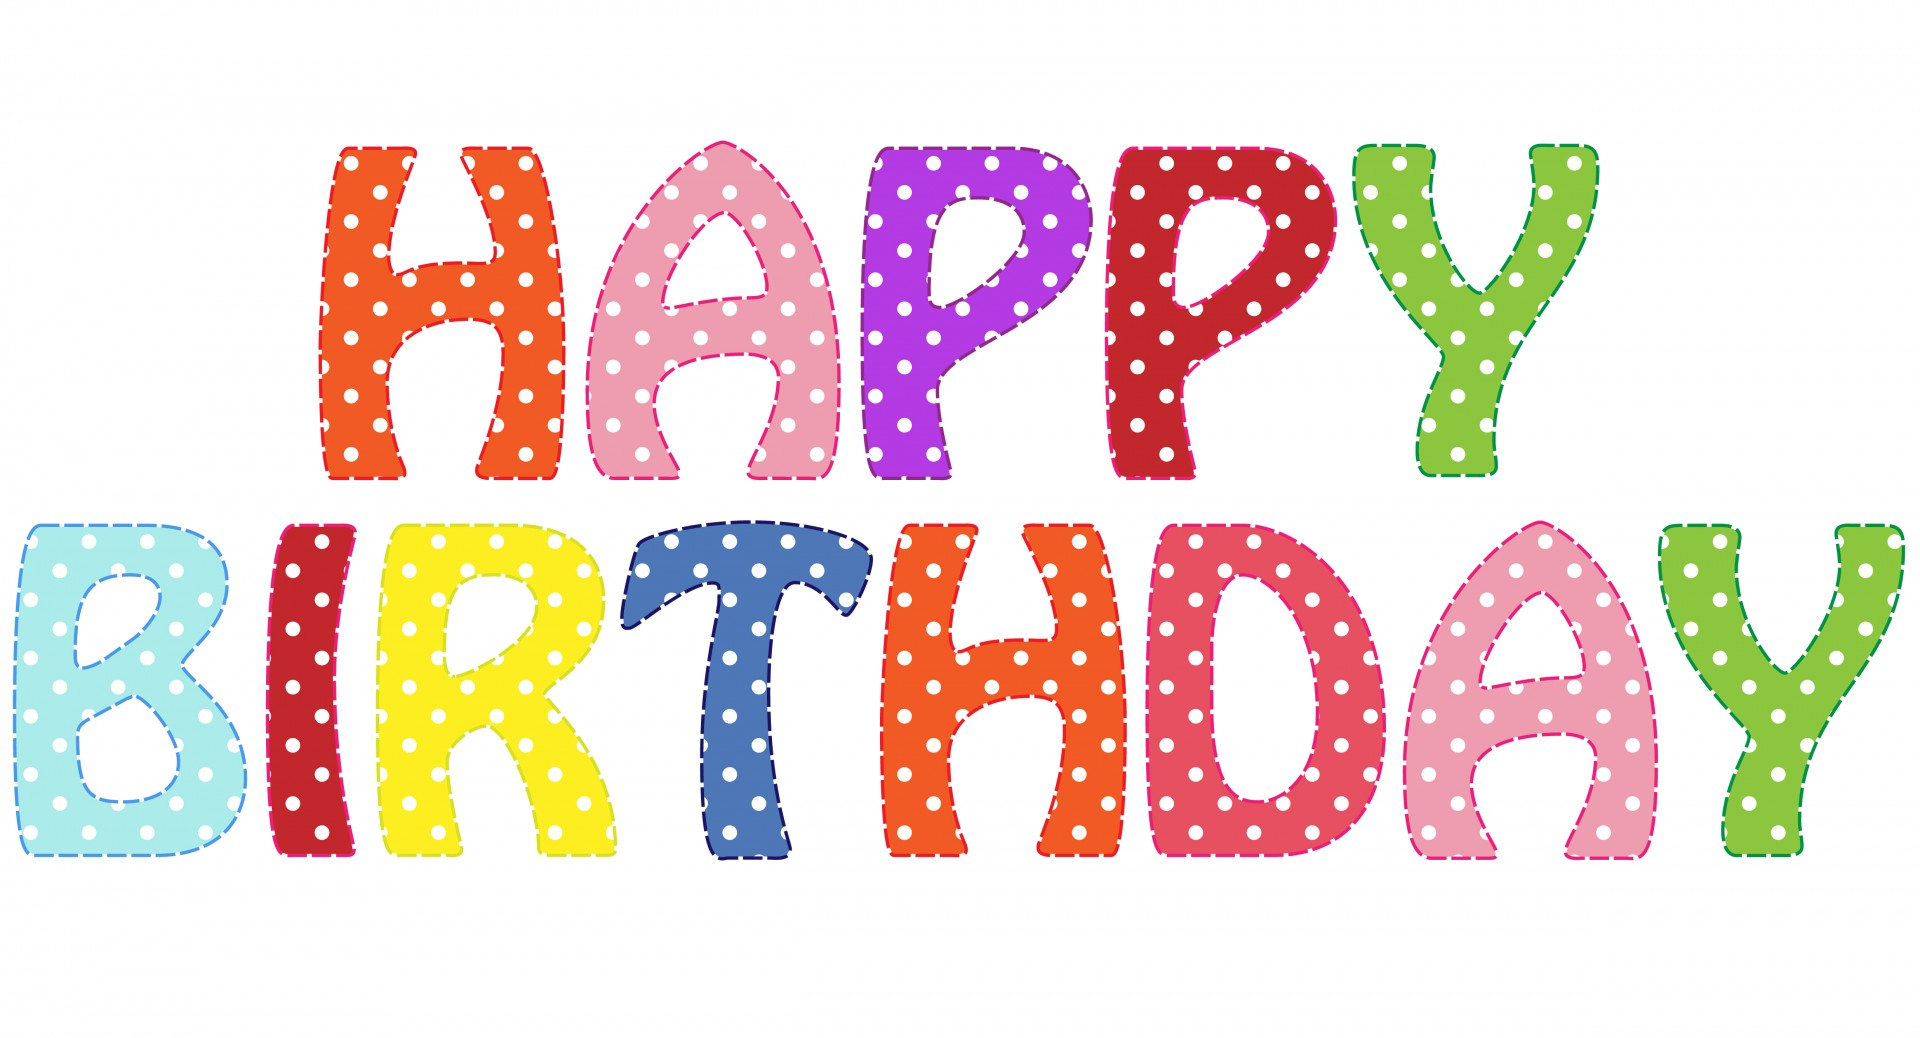 happy bday clipart ; 4453be800fafc1c0fd3c0e0aa7458850_happy-birthday-wallpapers-background-other-wallpaper-onypencom-happy-birthday-clipart-no-background_1920-1038